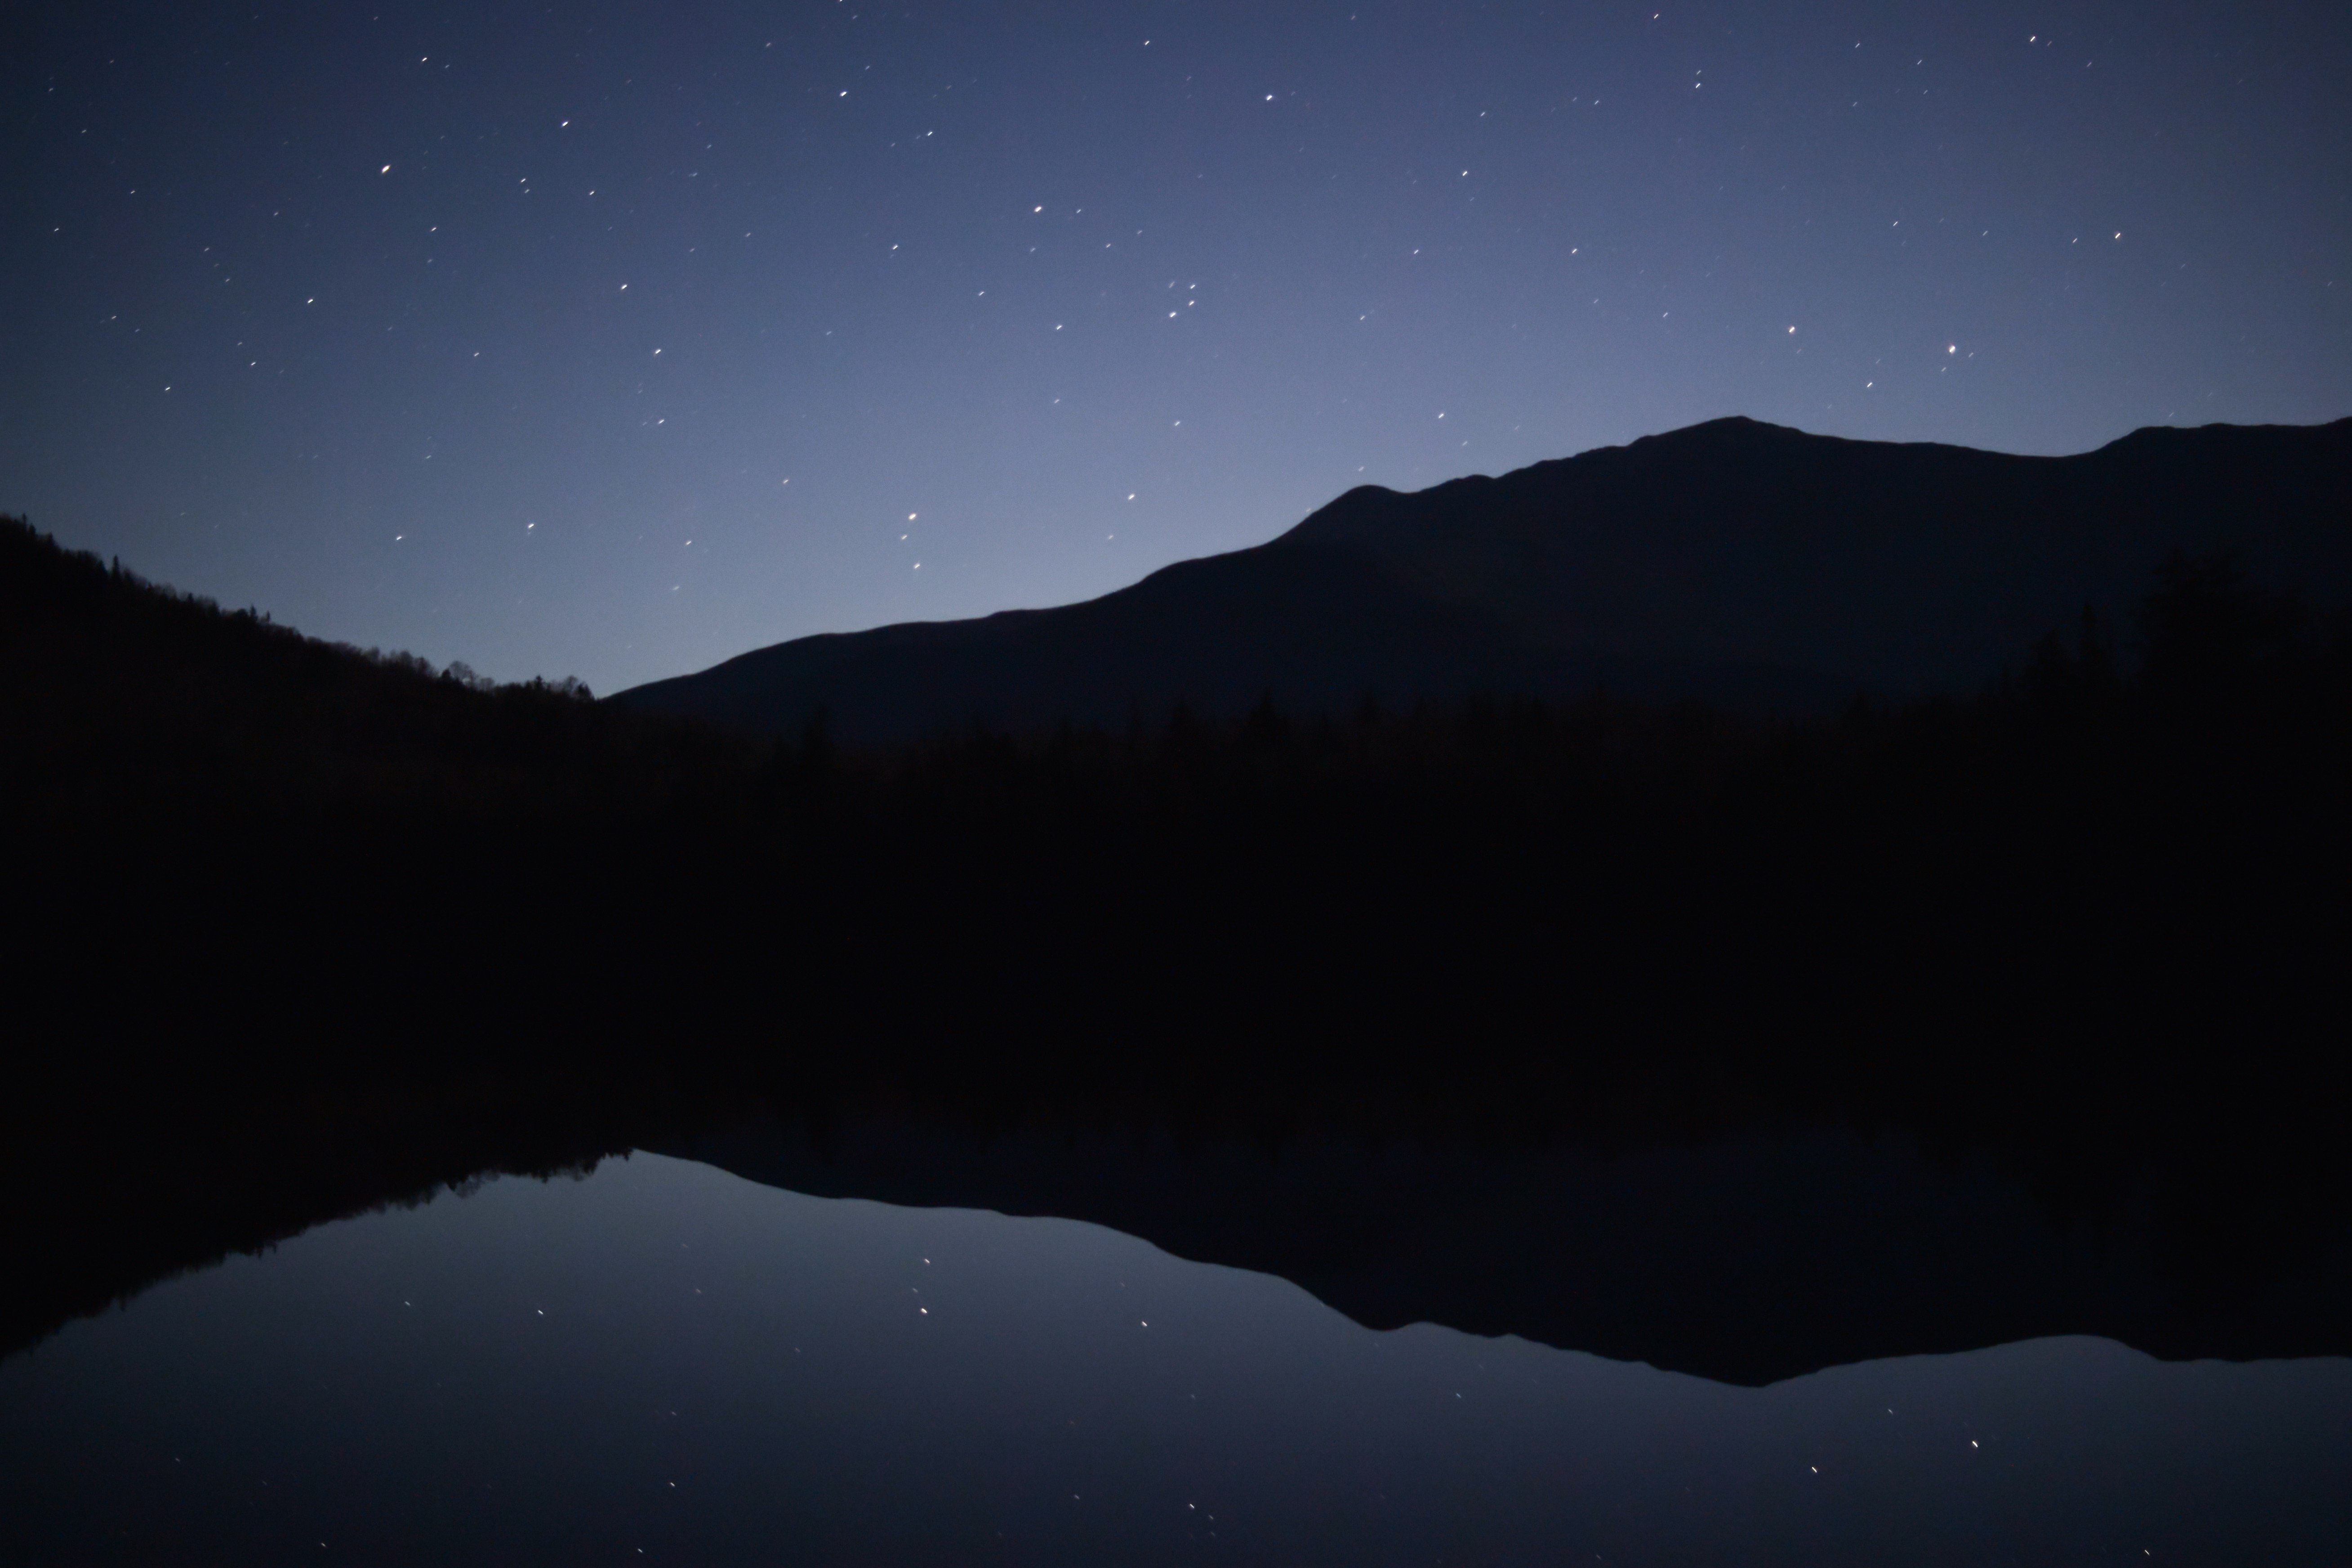 Getting The Shot: Shooting the Stars   Zachary Kenney